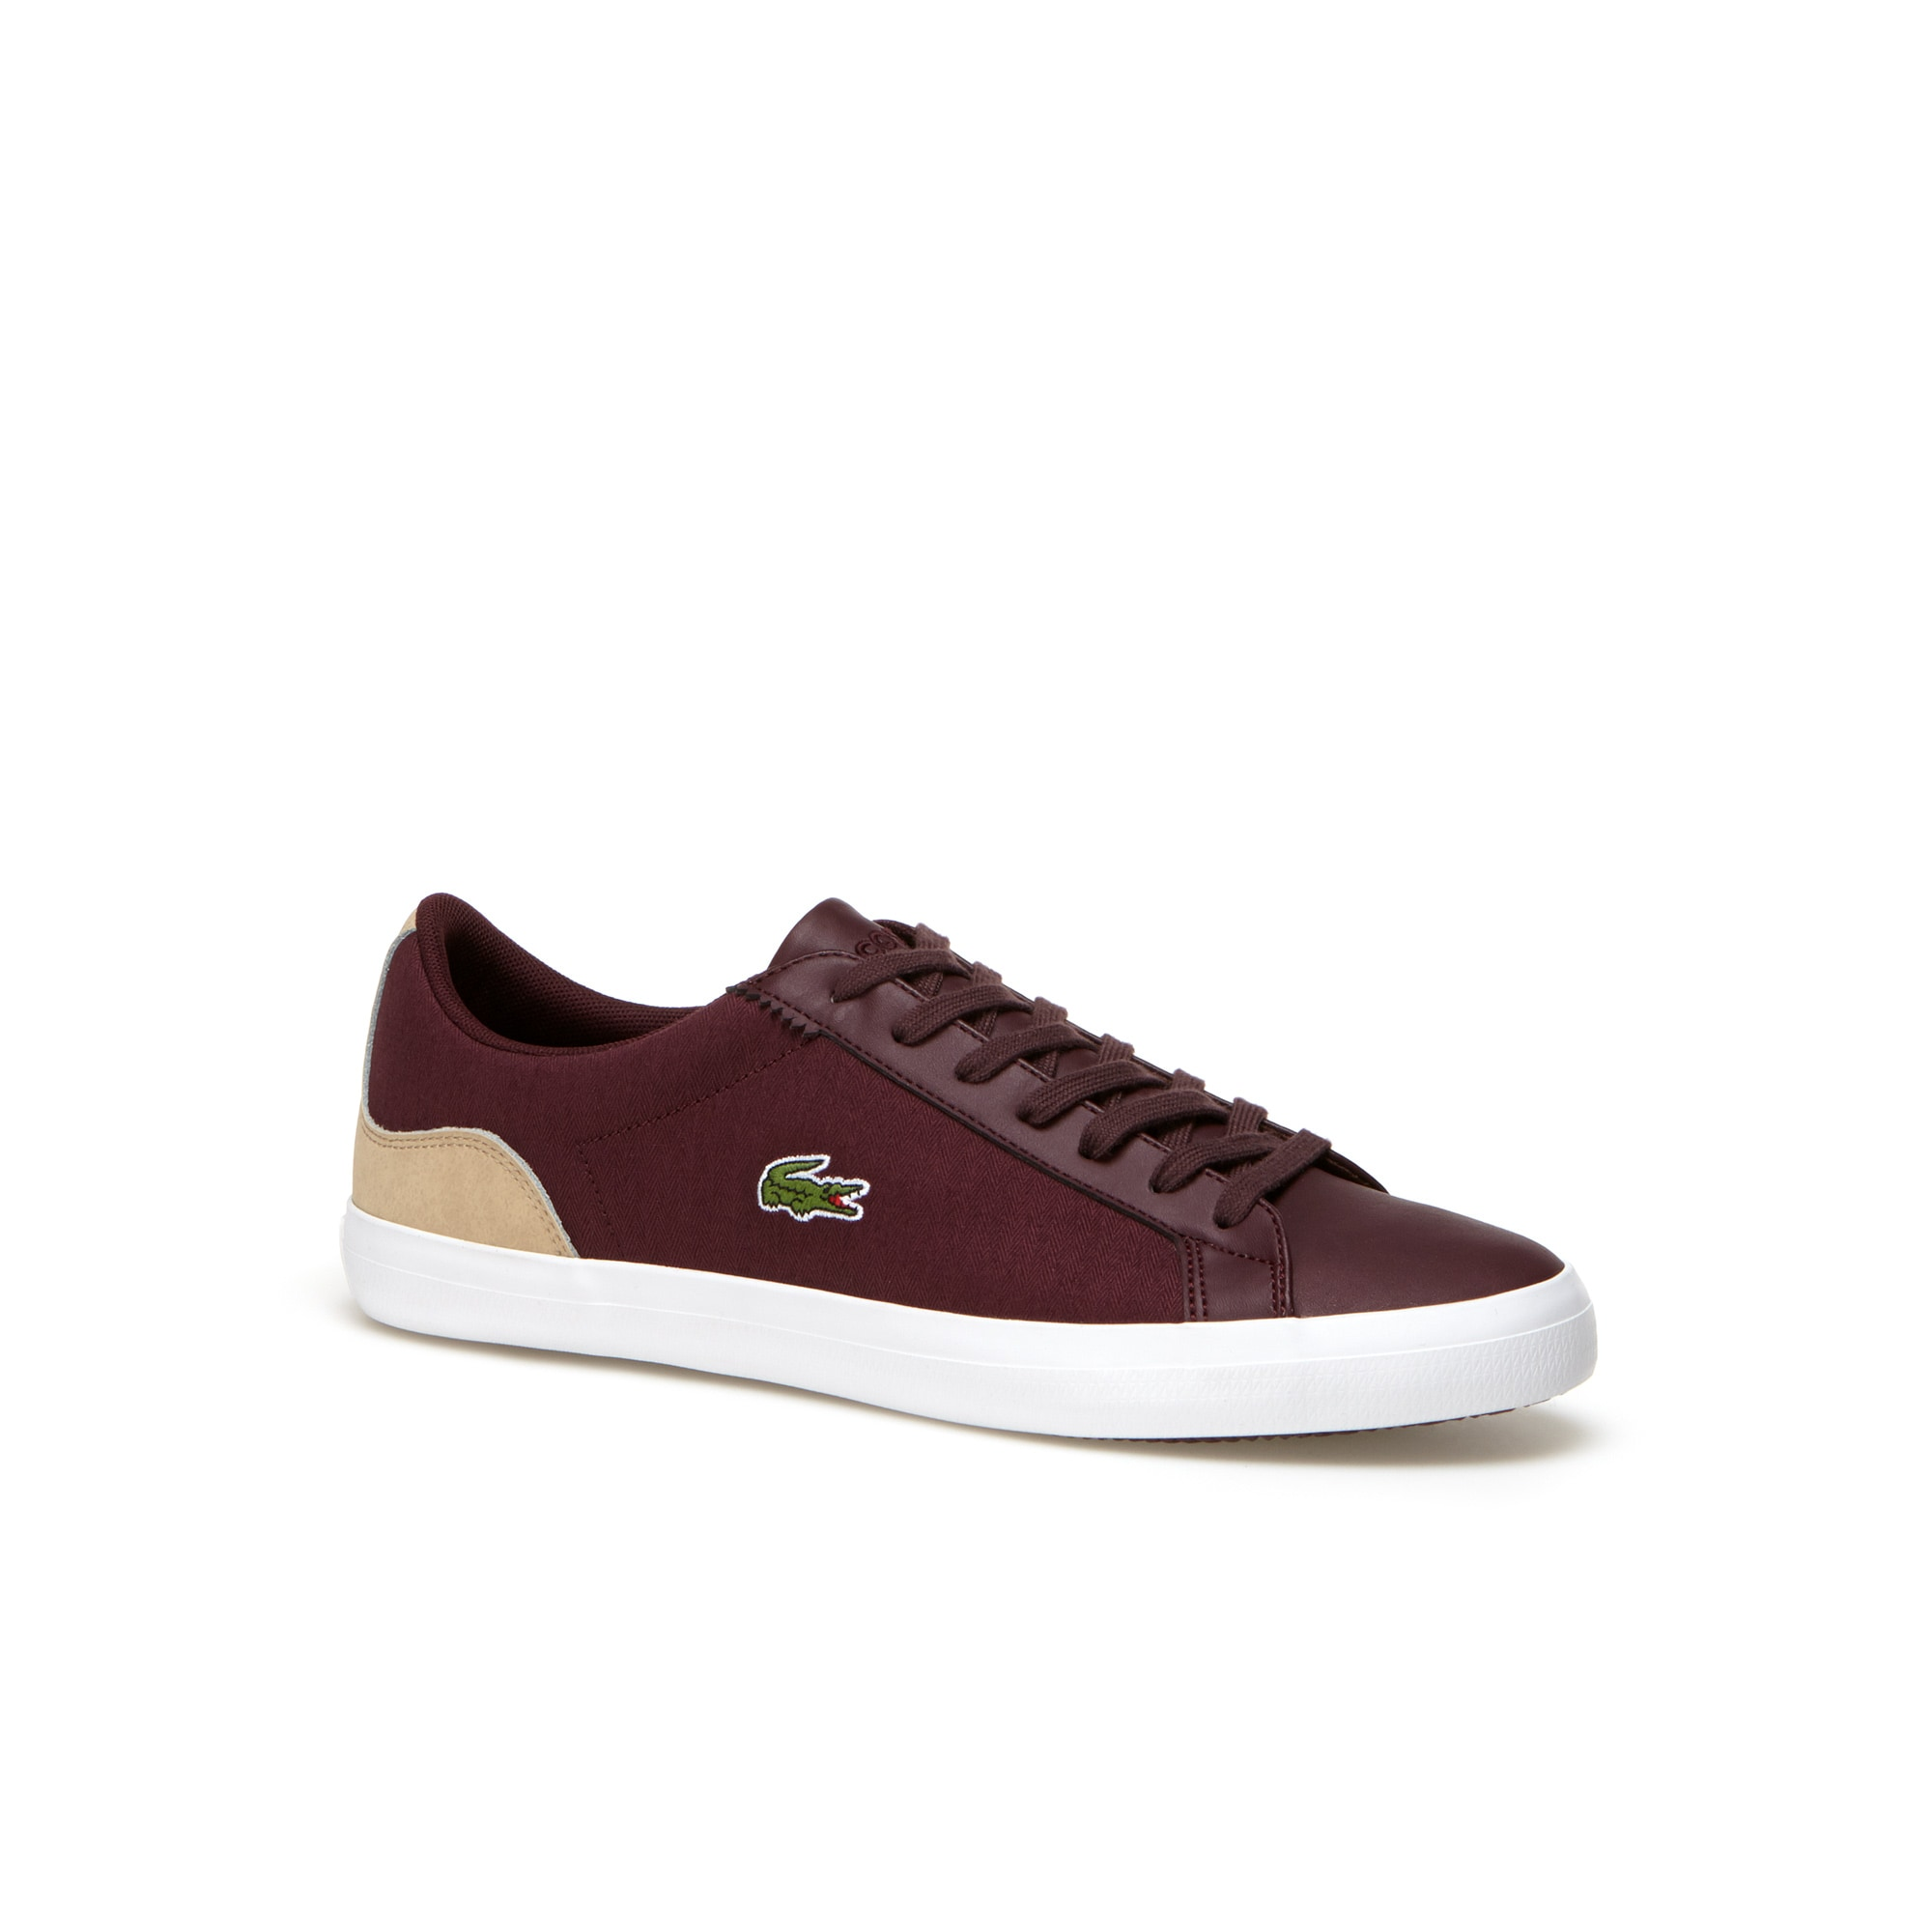 Men's Lerond Low-Rise Canvas trainers